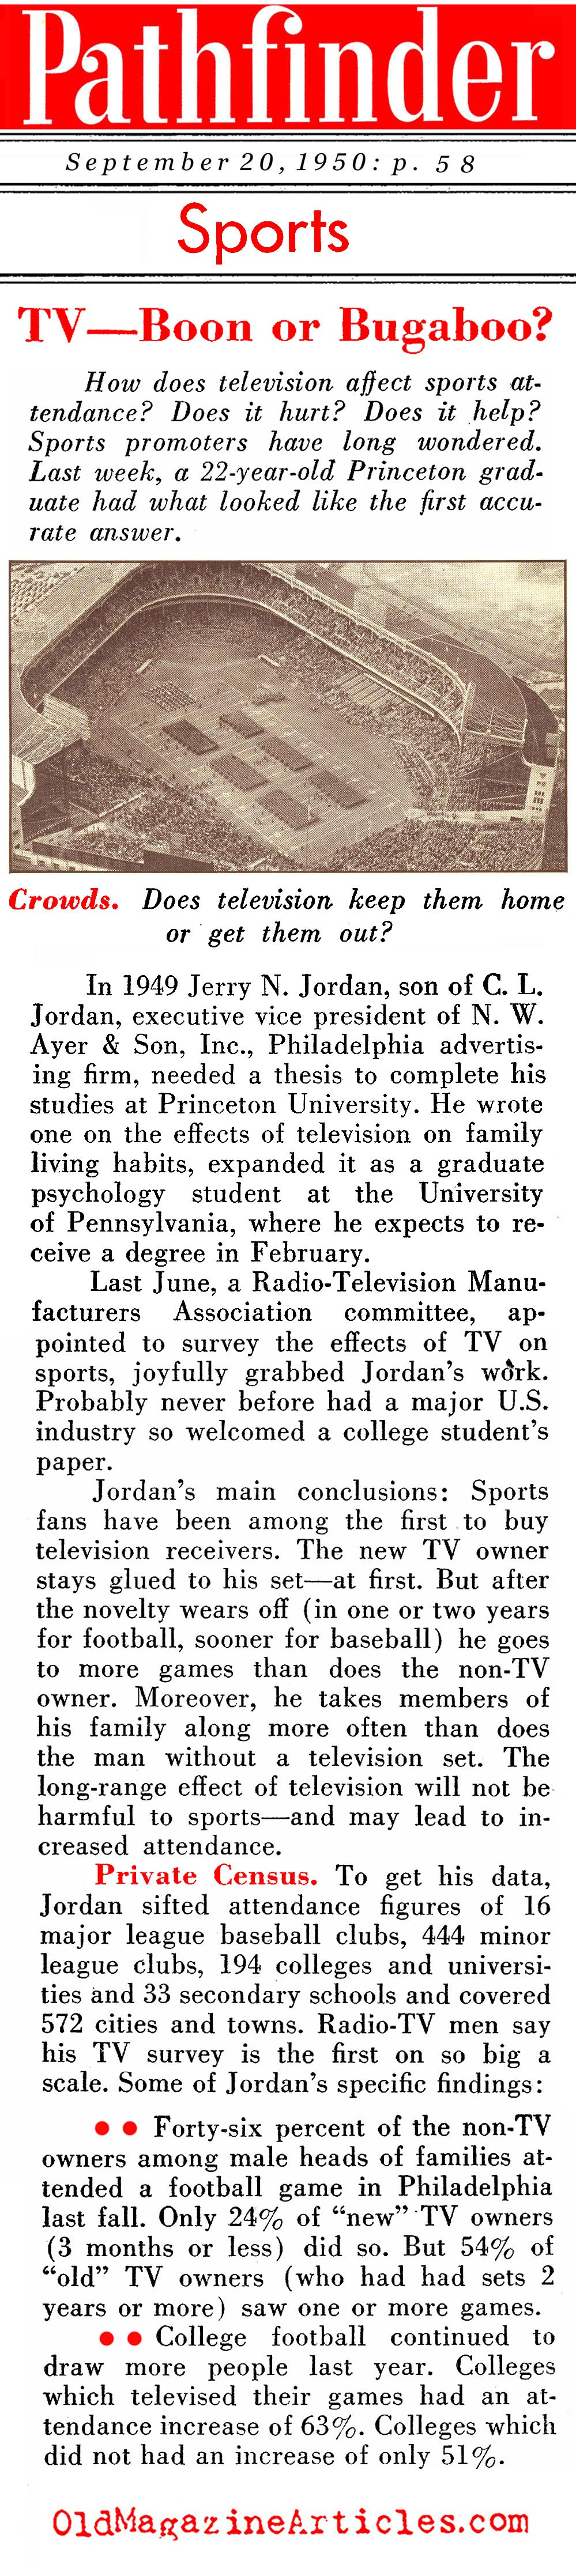 TV Viewers And Sports Attendance (Pathfinder Magazine, 1950)